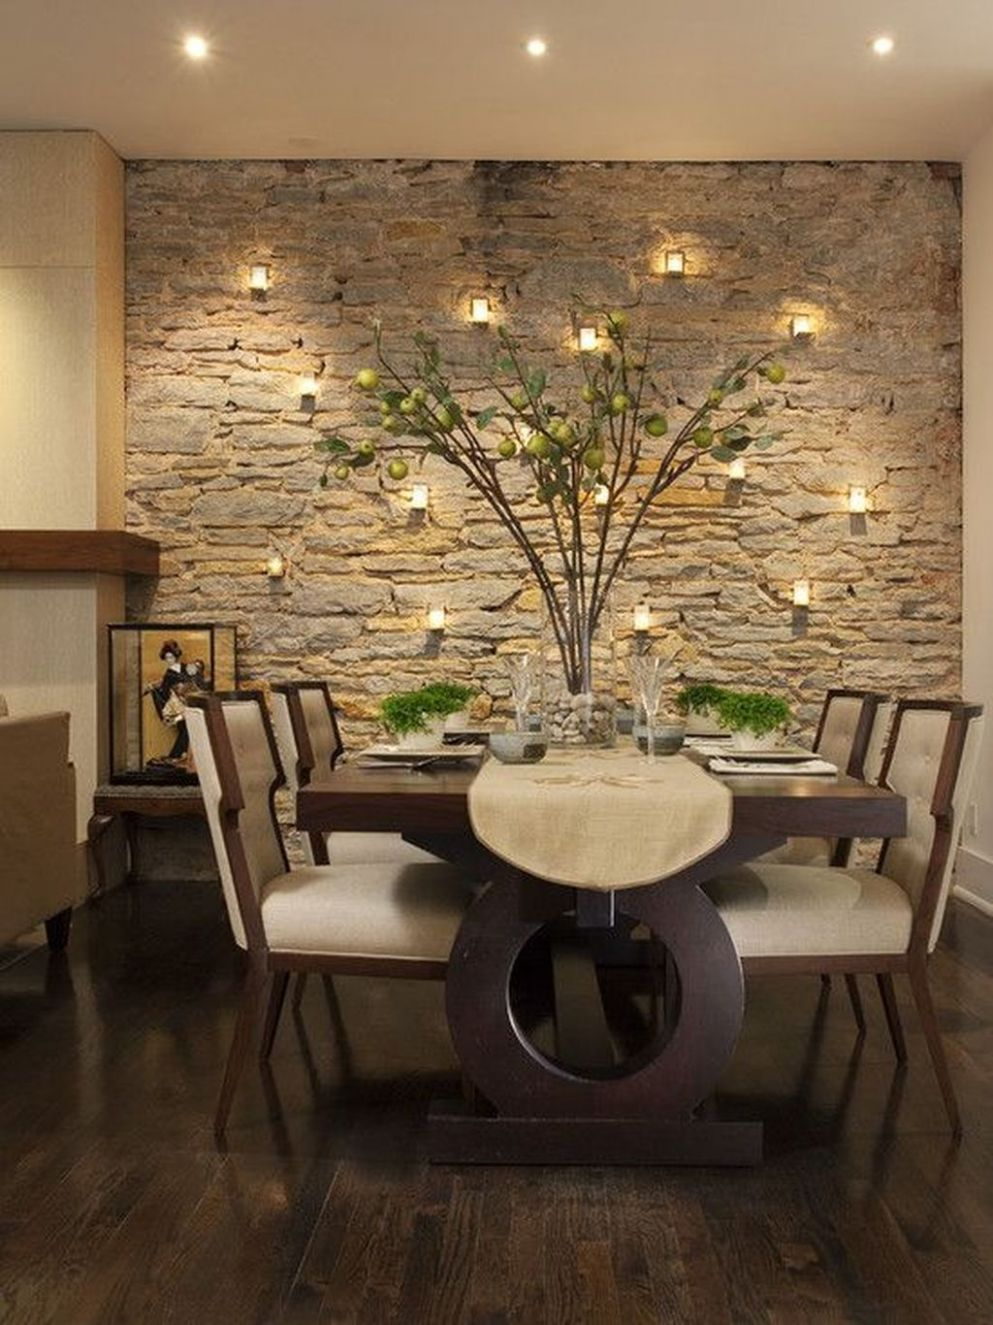 8 Best Dining Room Tiles Ideas | Dining room accents, Dining room ..